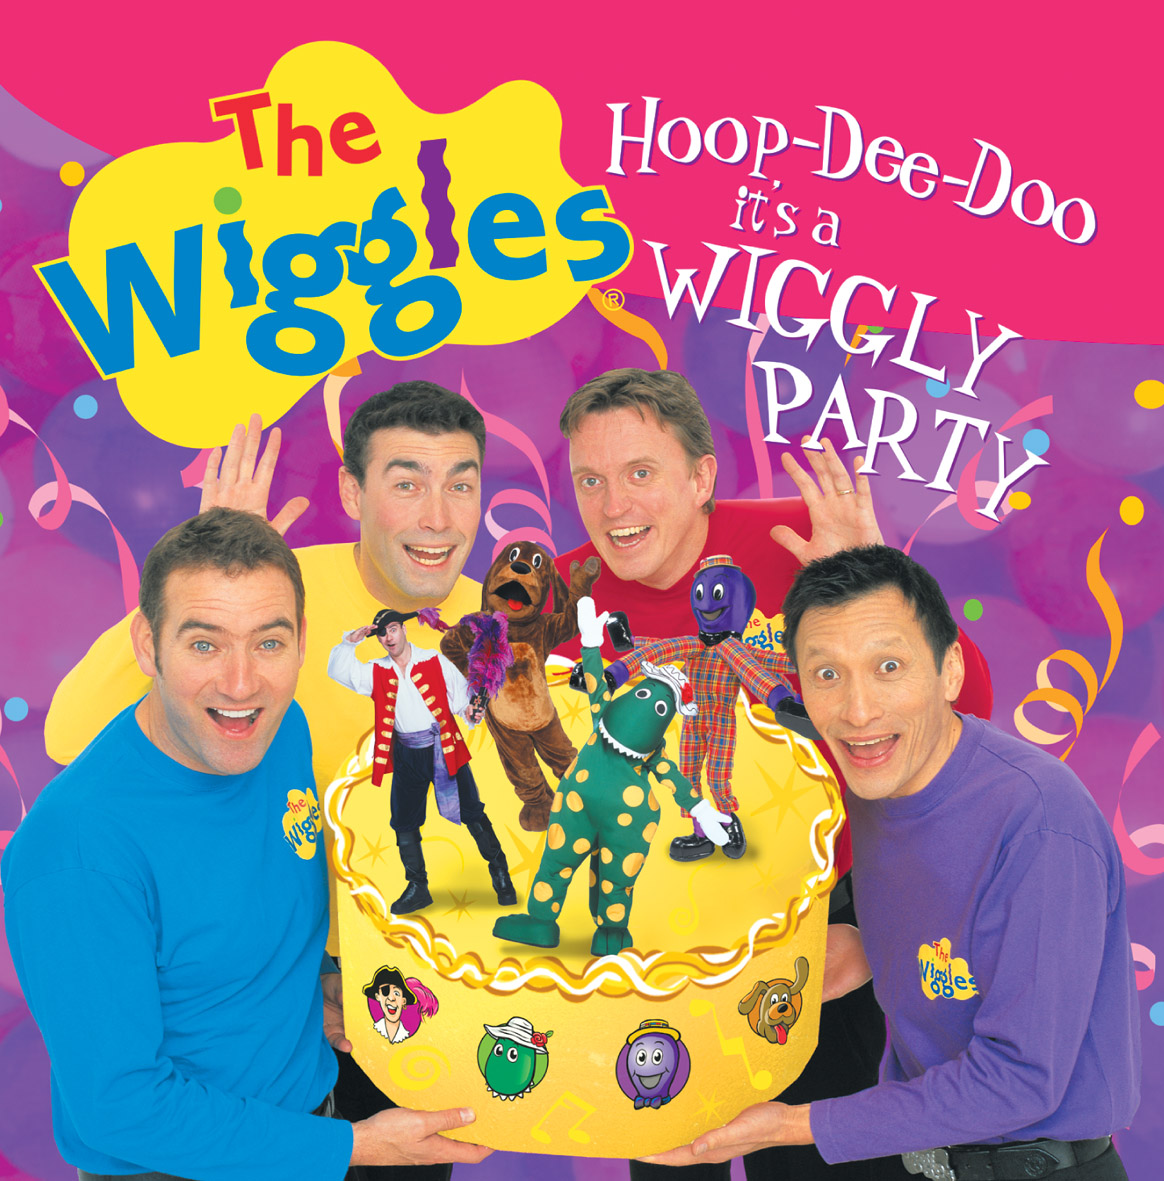 Hoop-Dee-Doo it's a Wiggly Party (album)